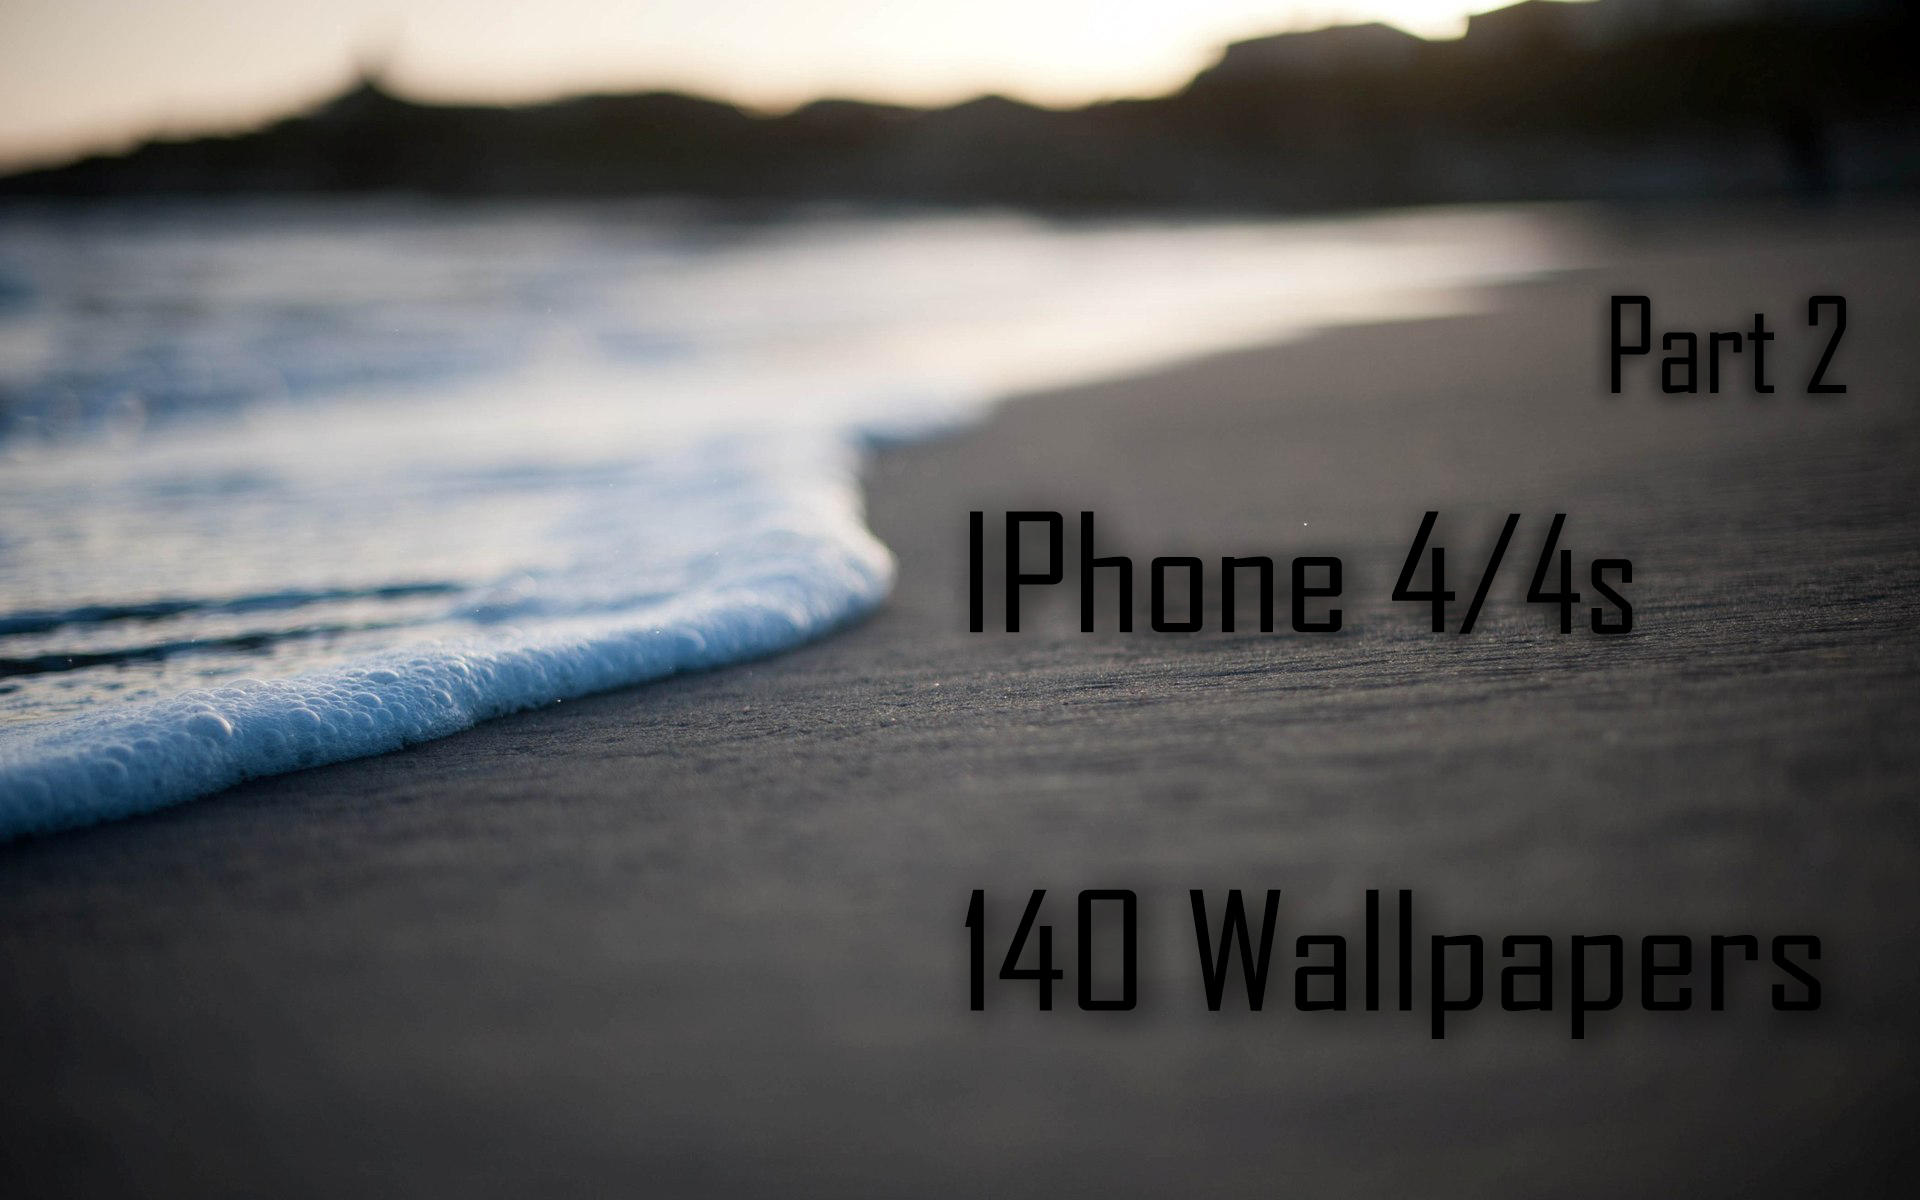 140 Wallpapers 2 by bladedgee